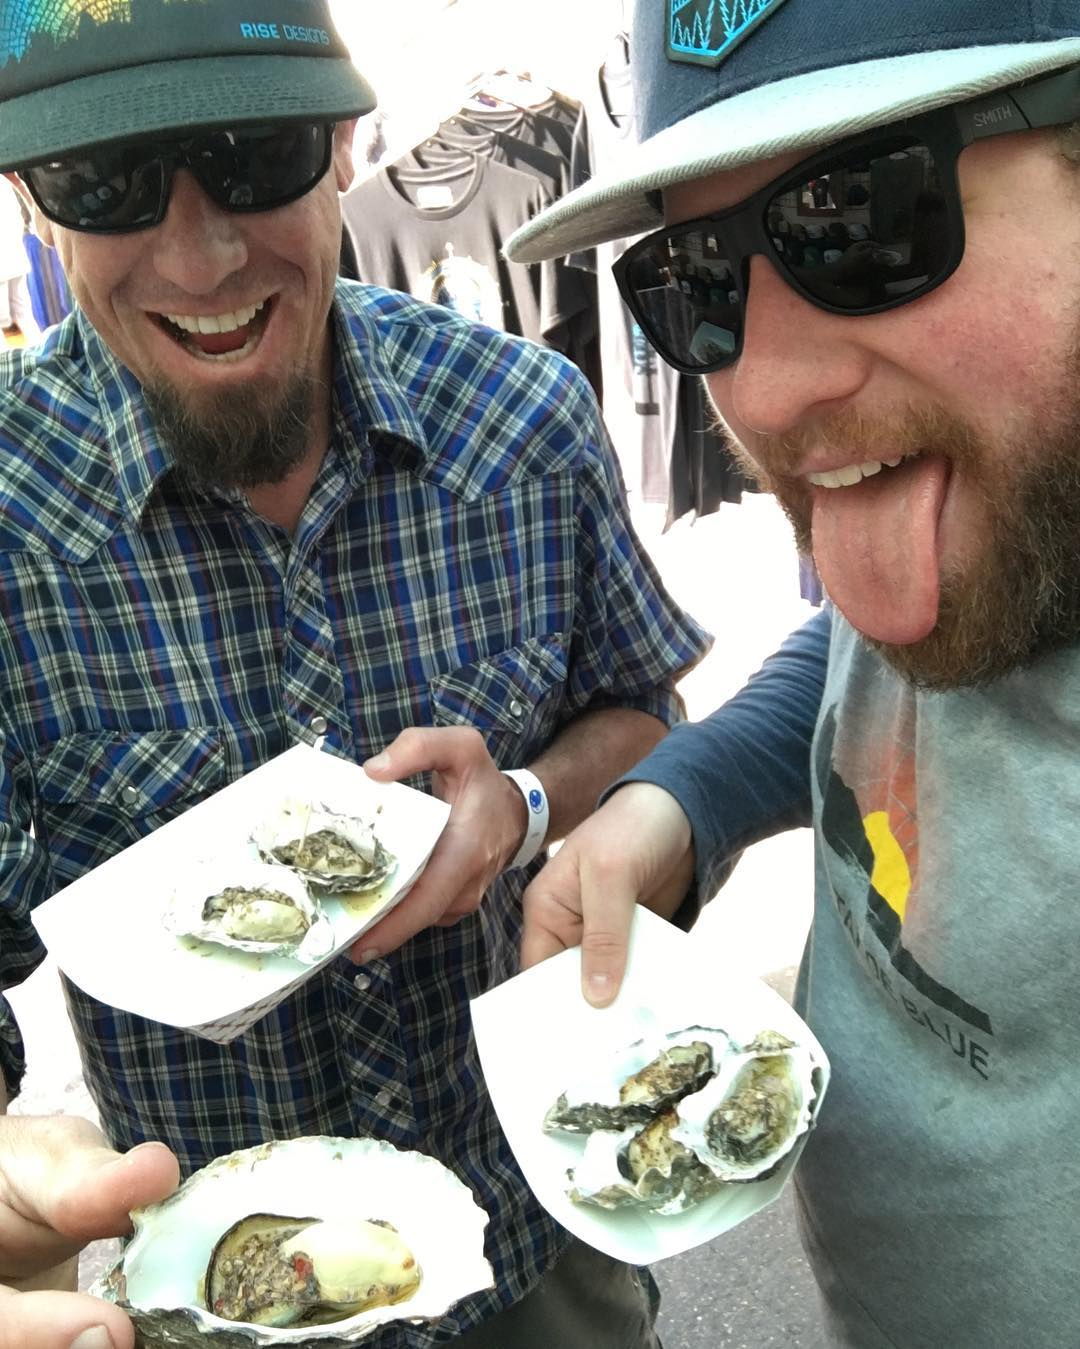 When we're by the coast, we have oysters for breakfast. So good. Come on down to the North Country Fair in Arcata, CA and hang with us! #risedesigns #risedesignstahoe #northcountryfair #roadtrip #year7! #riseguys